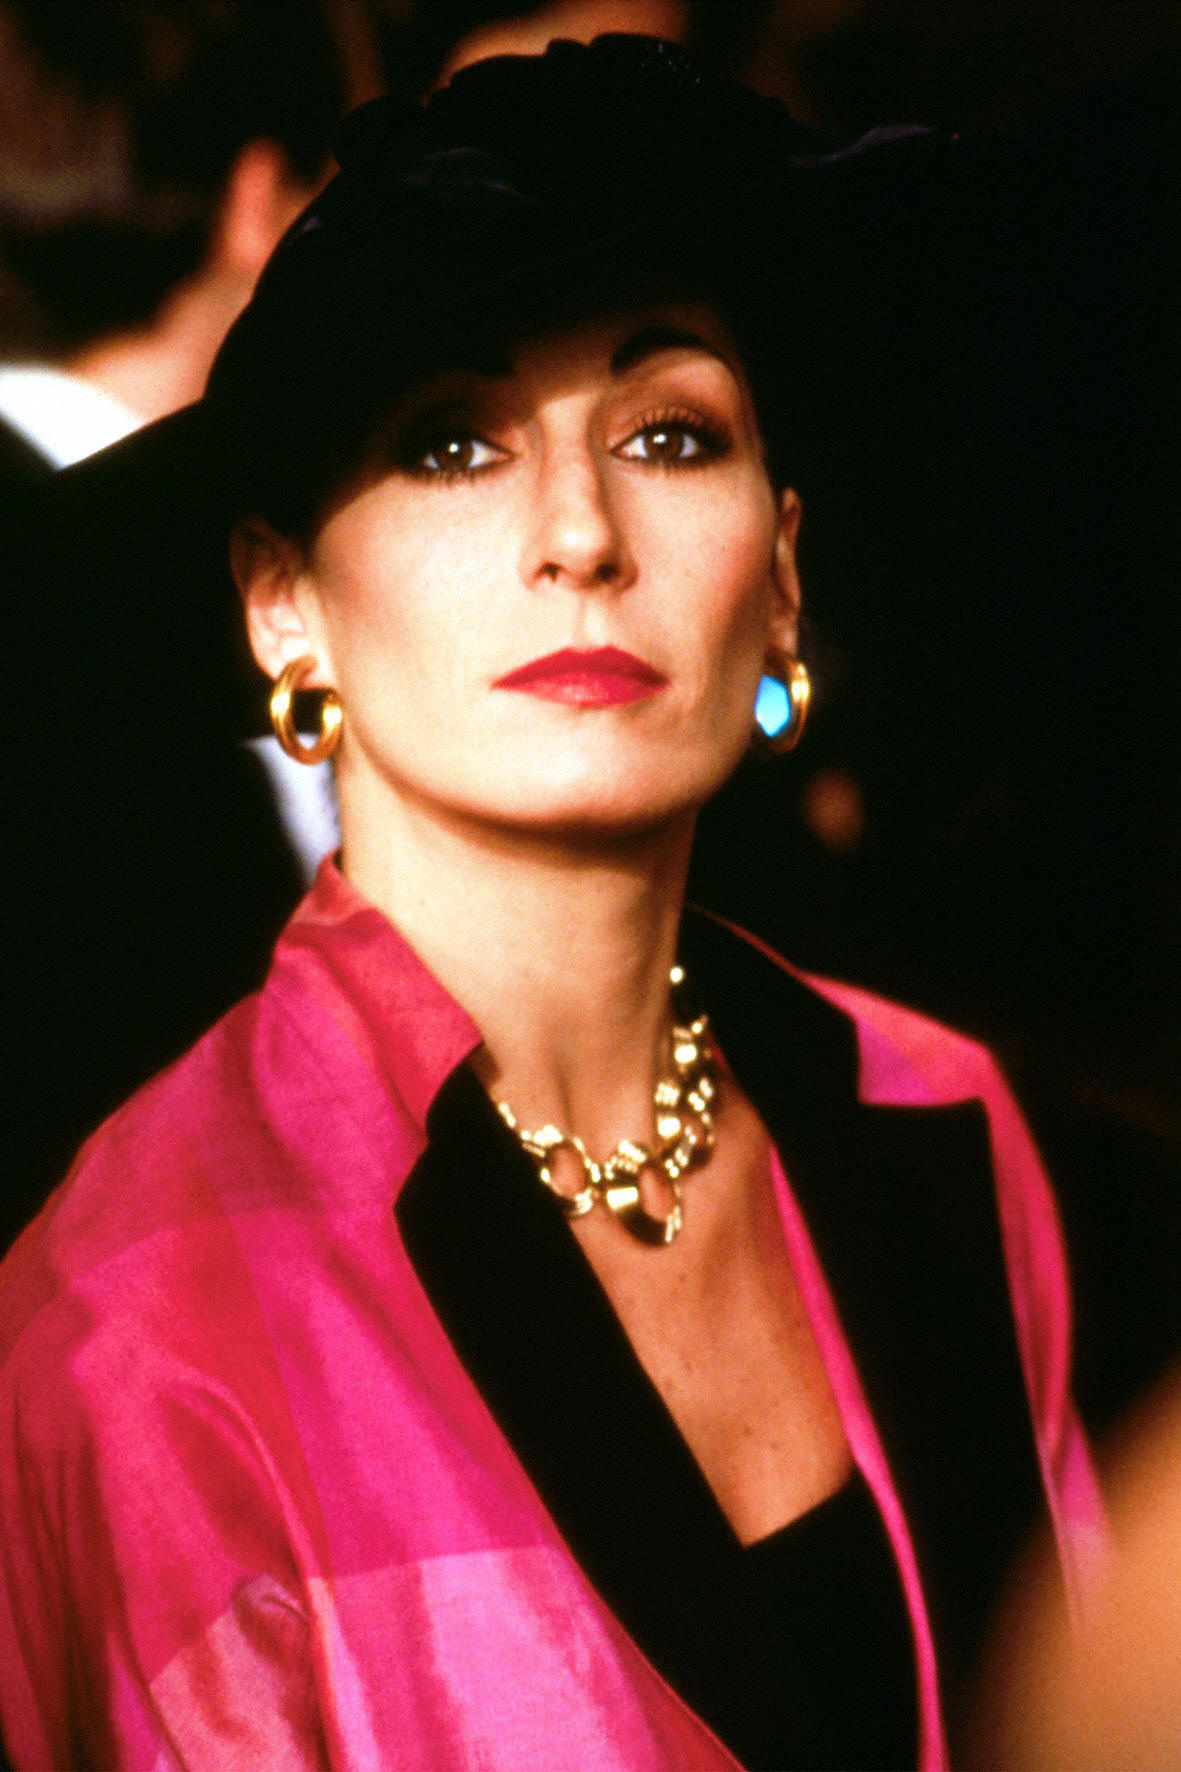 067-anjelica-huston-theredlist.jpeg